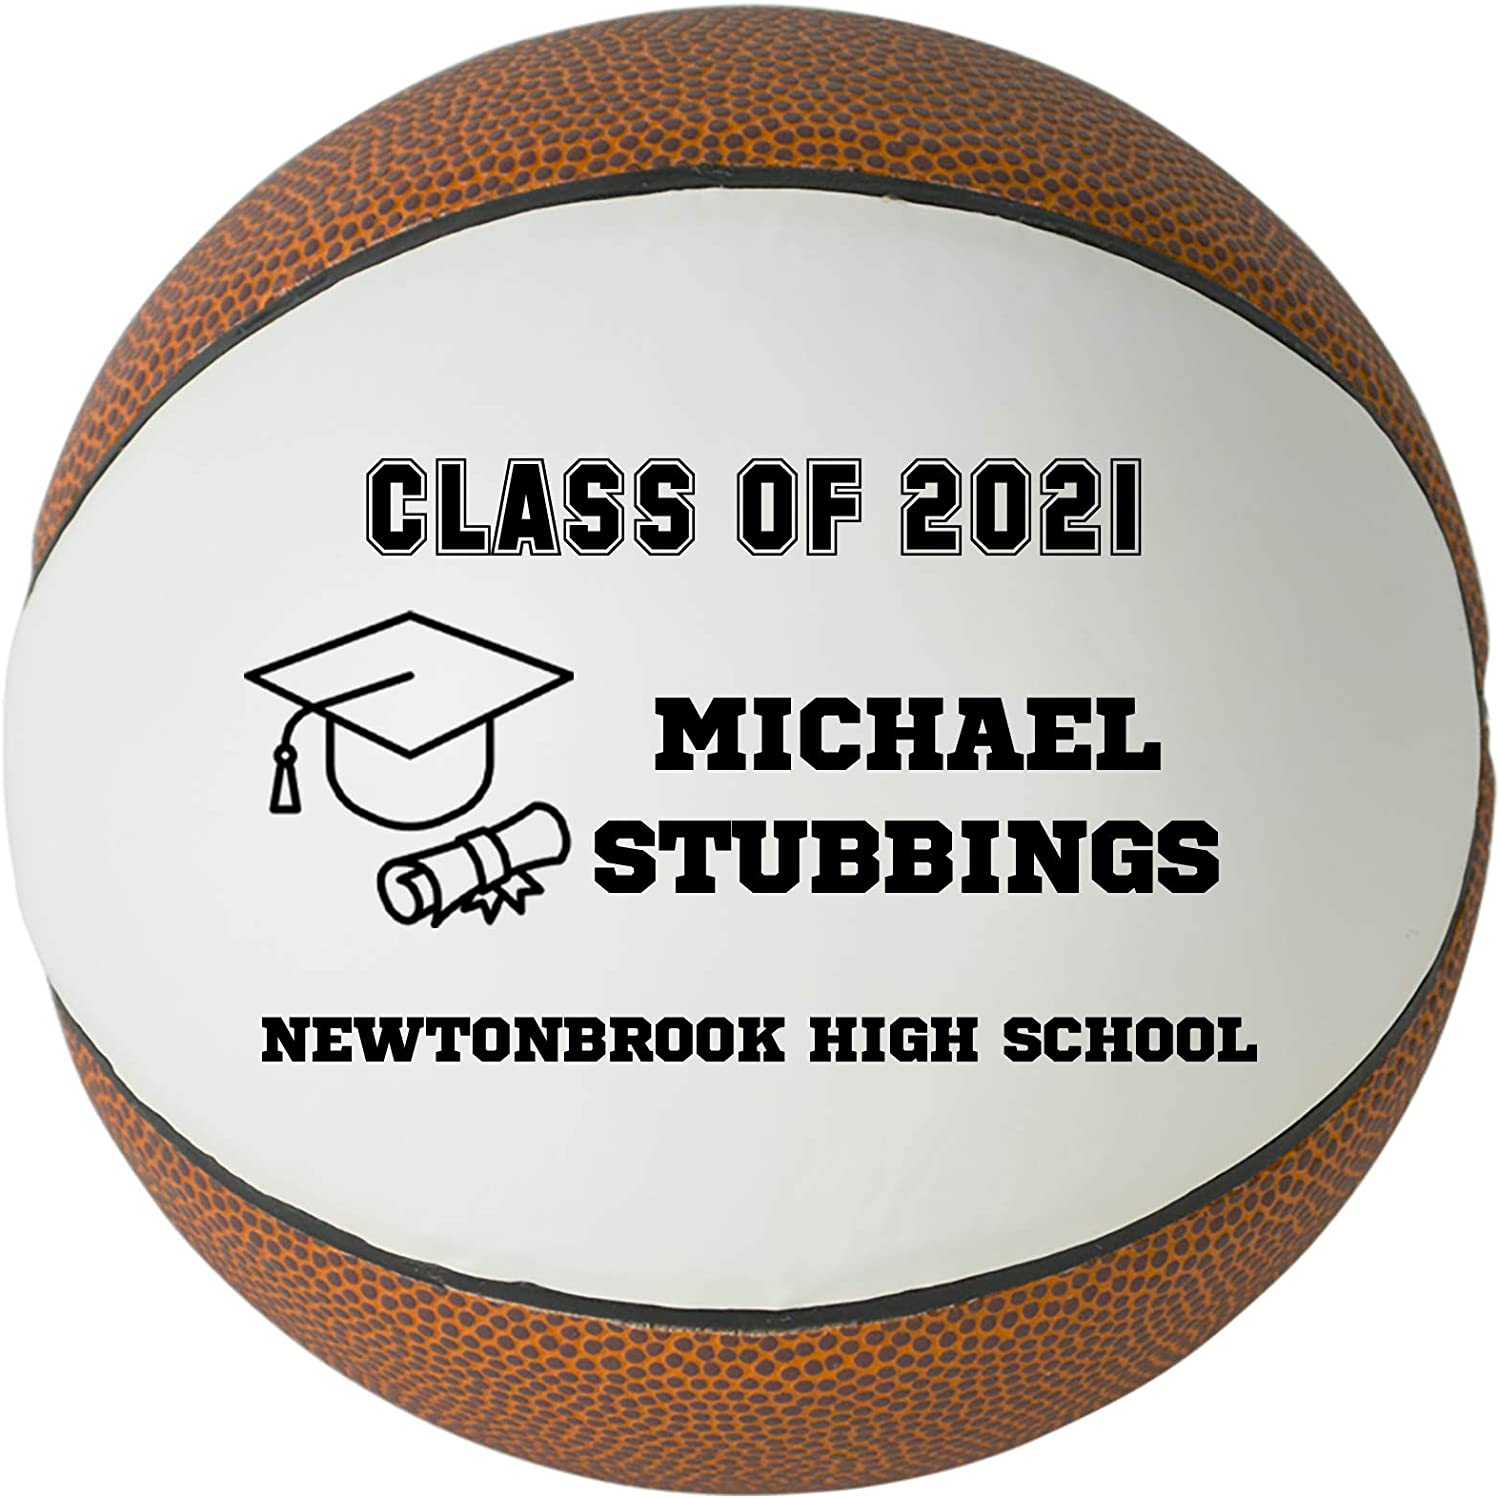 Personalized Custom 4 years warranty OFFicial store Graduation 2021 Basketball - Clas